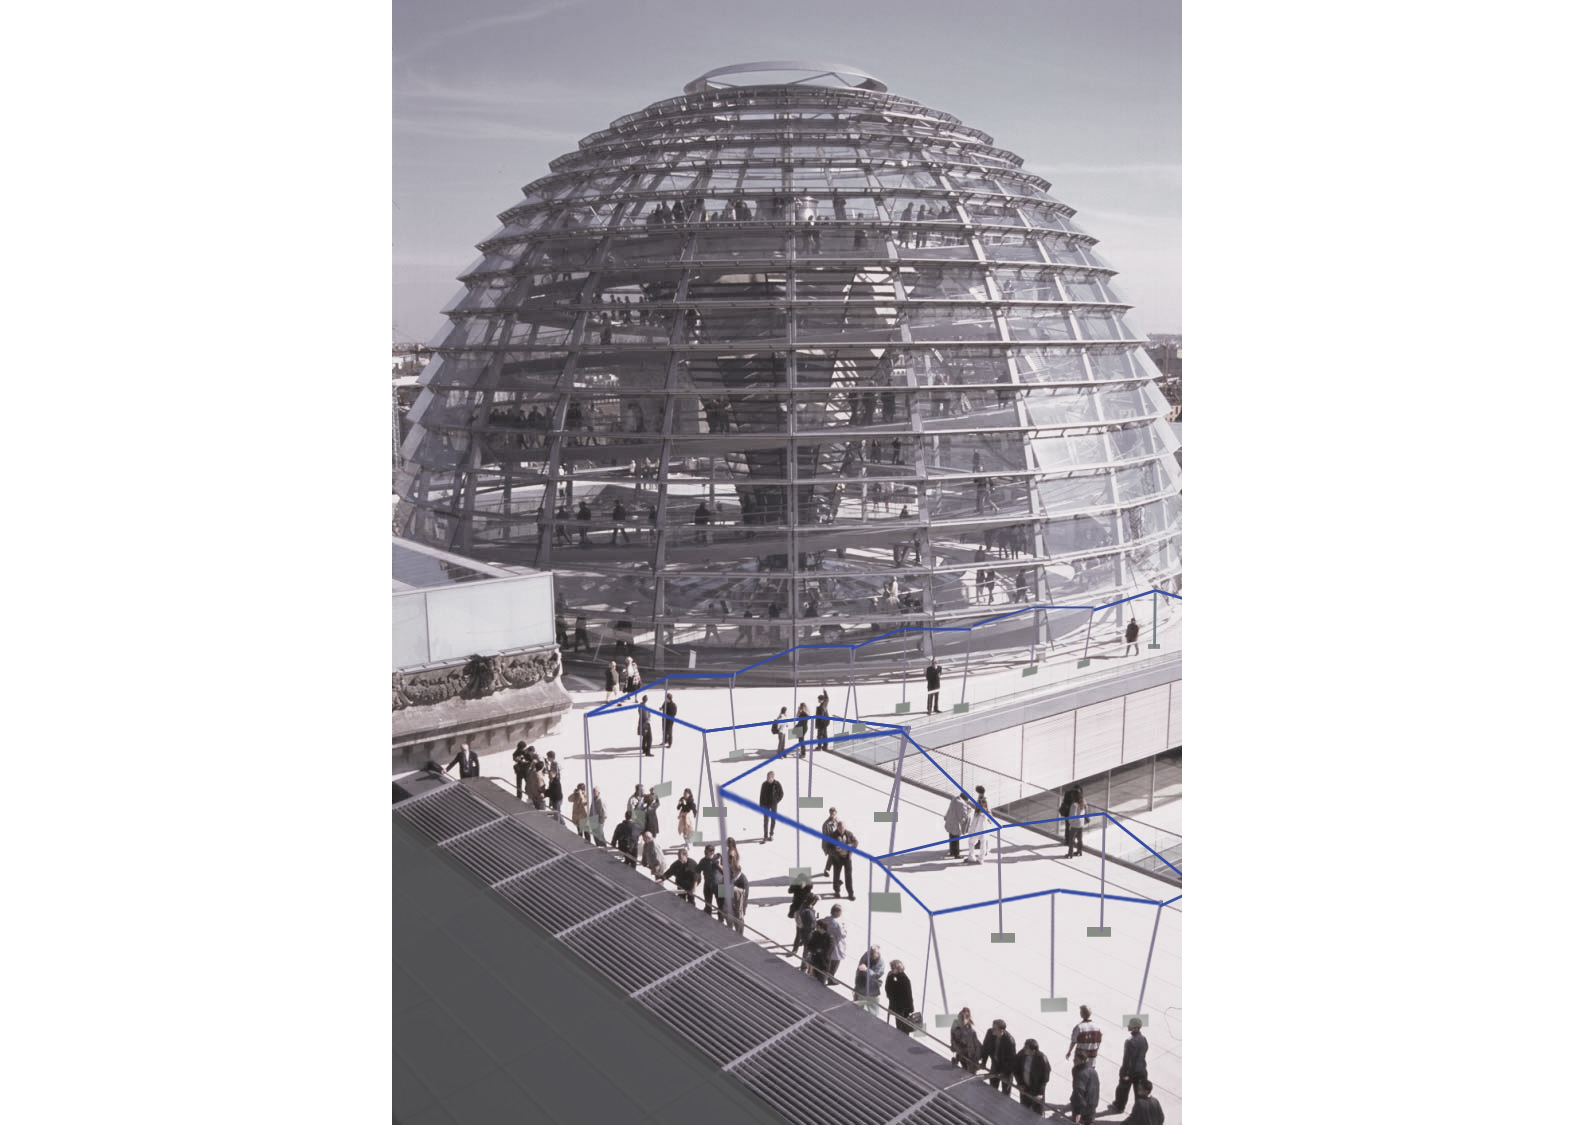 Project for Reichstag roof